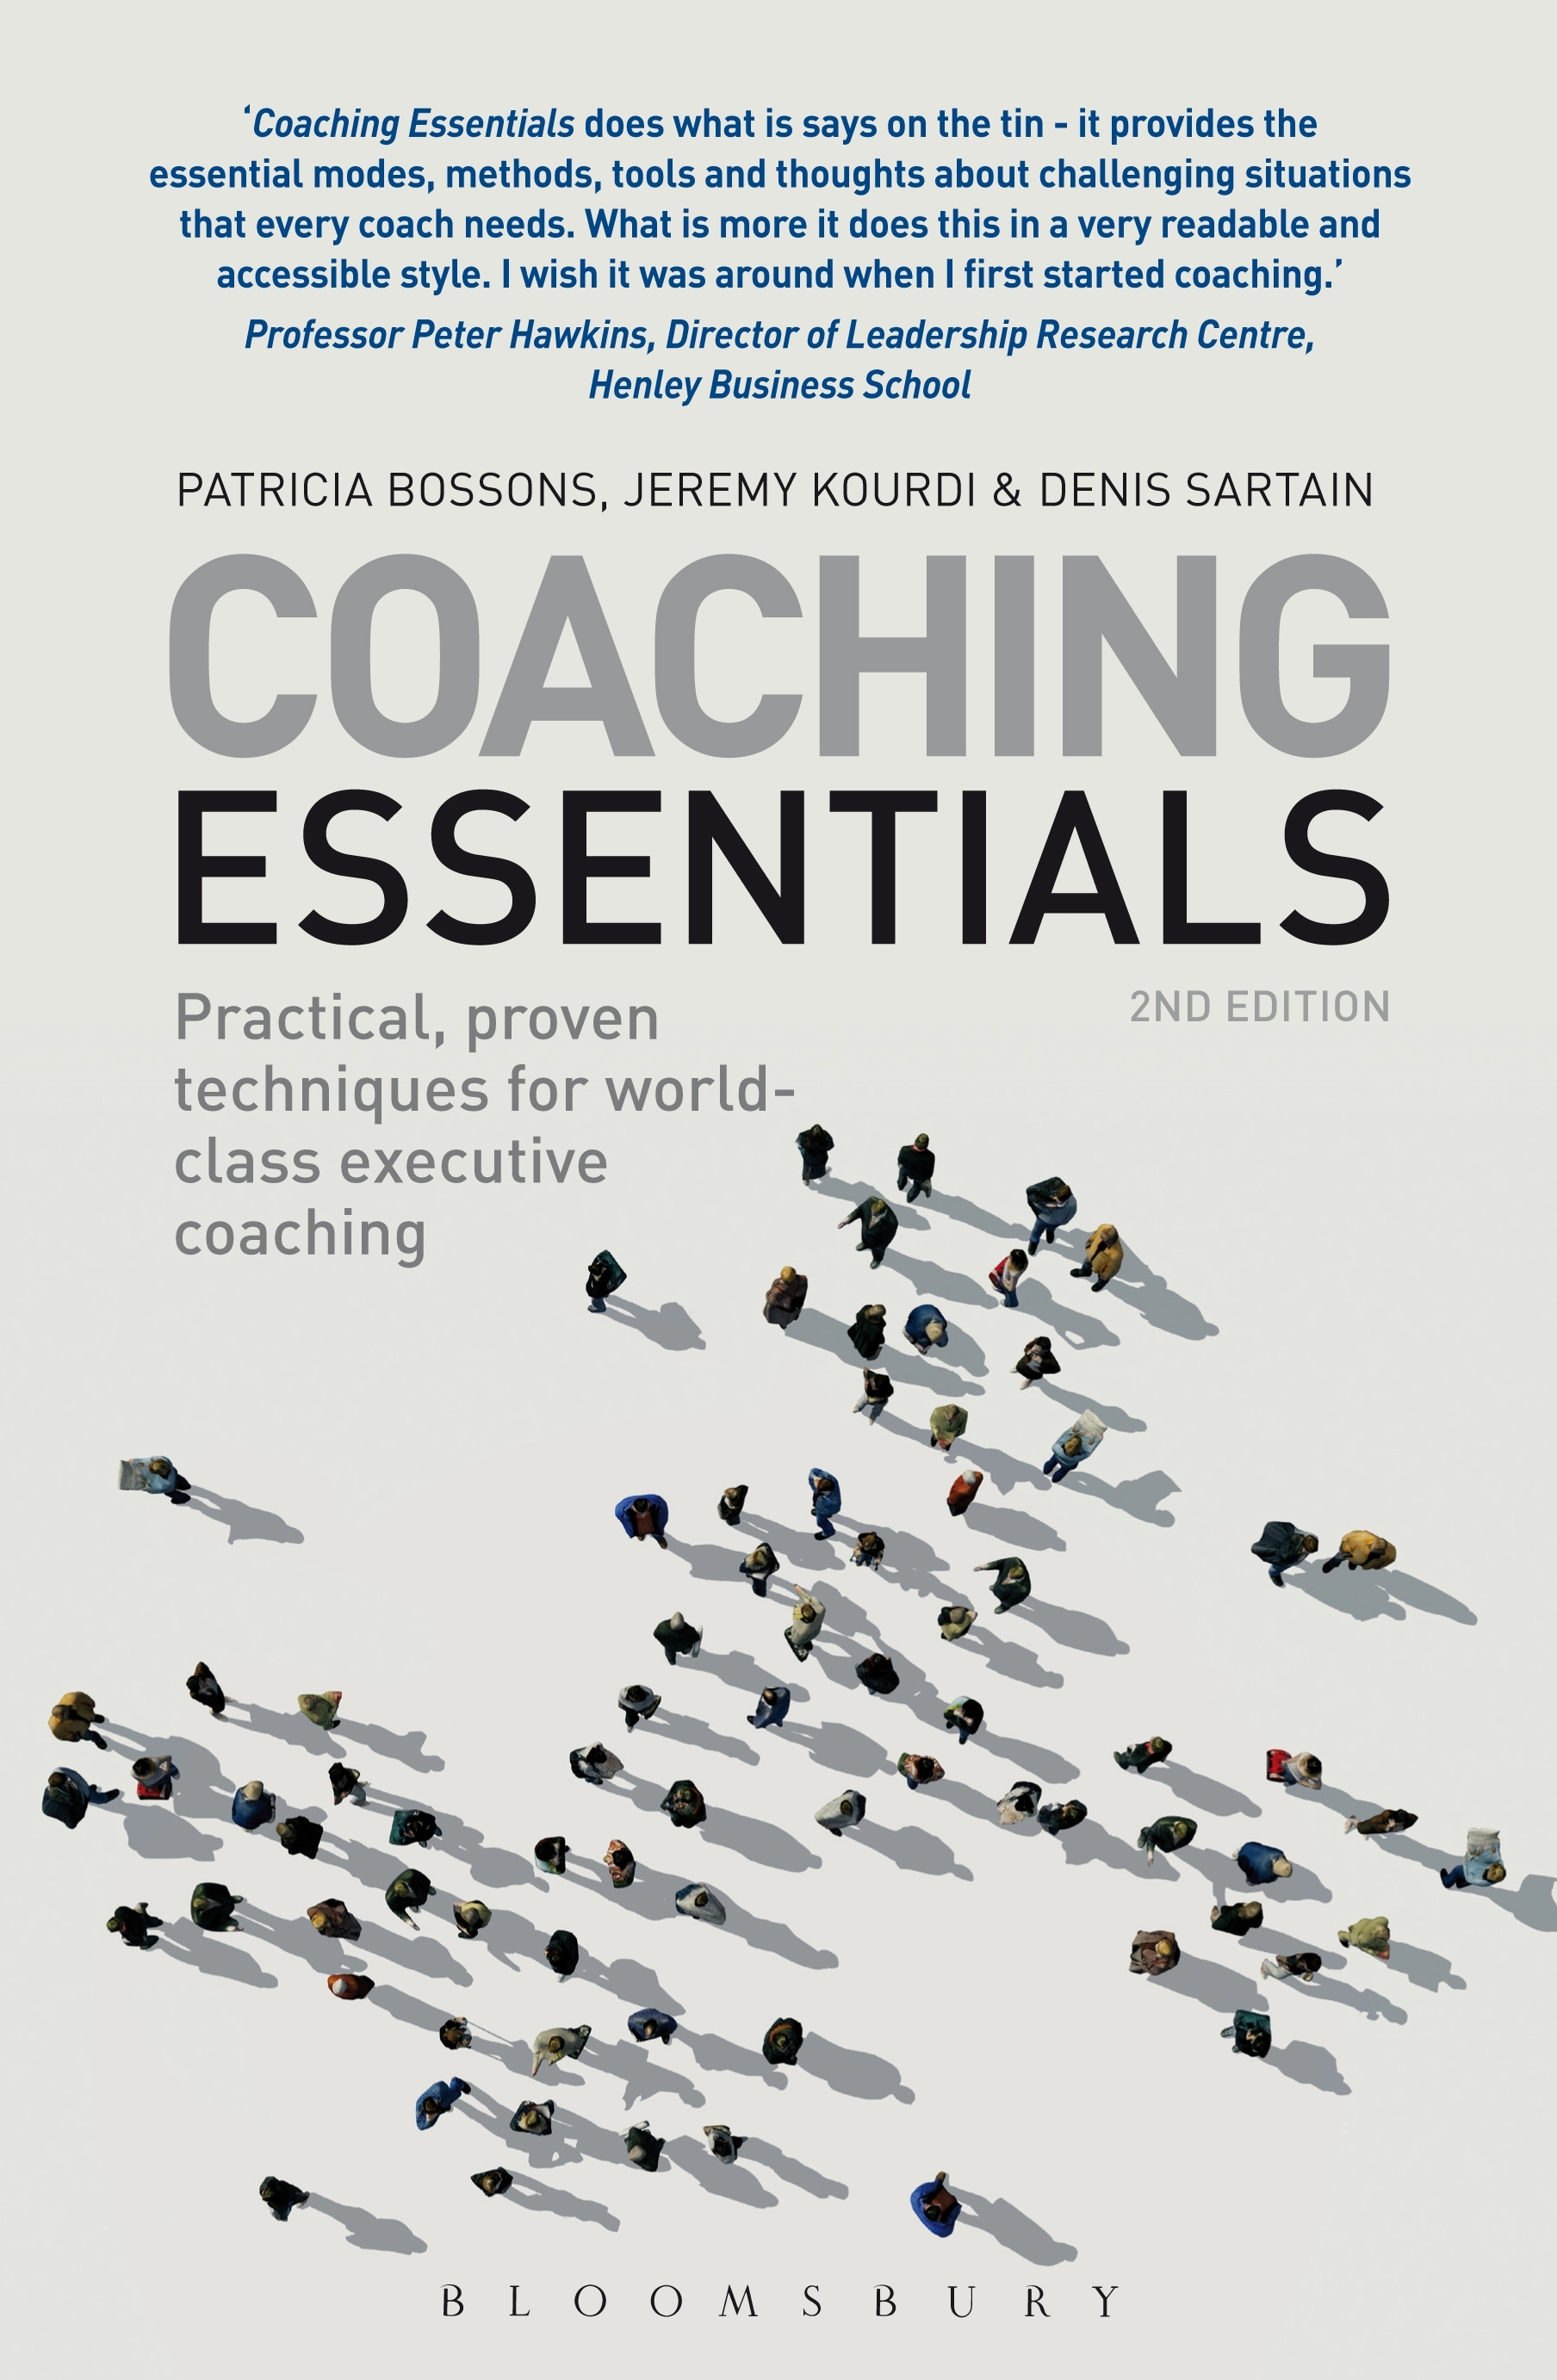 Coaching Essentials Practical, proven techniques for world-class executive coaching